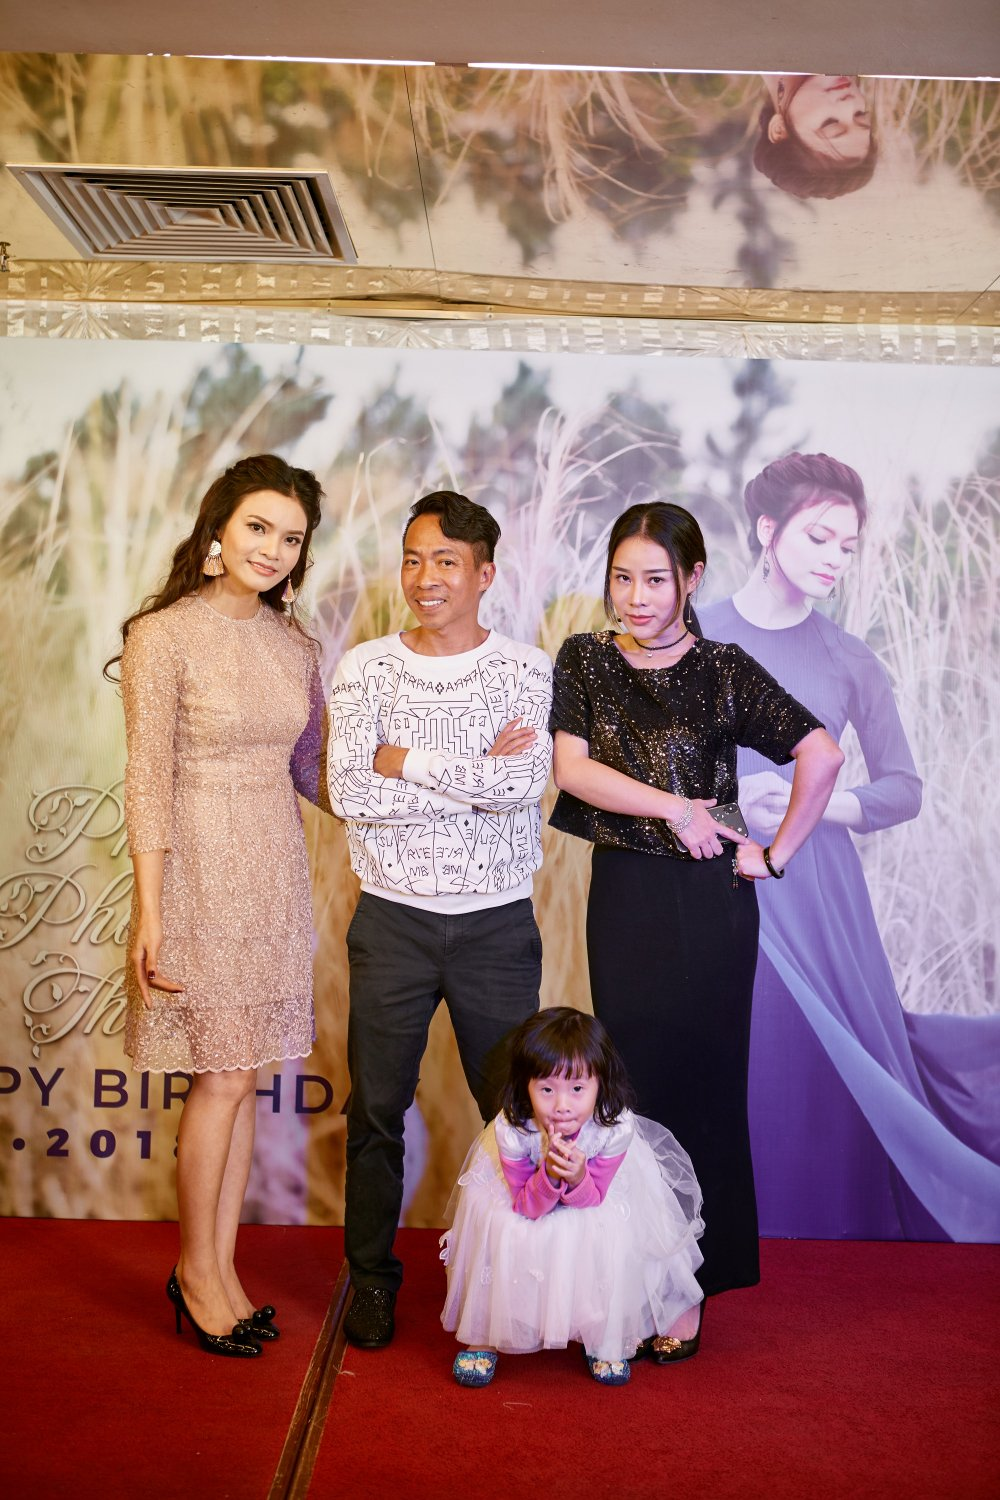 Nghe si Ha Noi hat 'Quoc ca' mung U23 trong tiec sinh nhat Pham Phuong Thao hinh anh 5